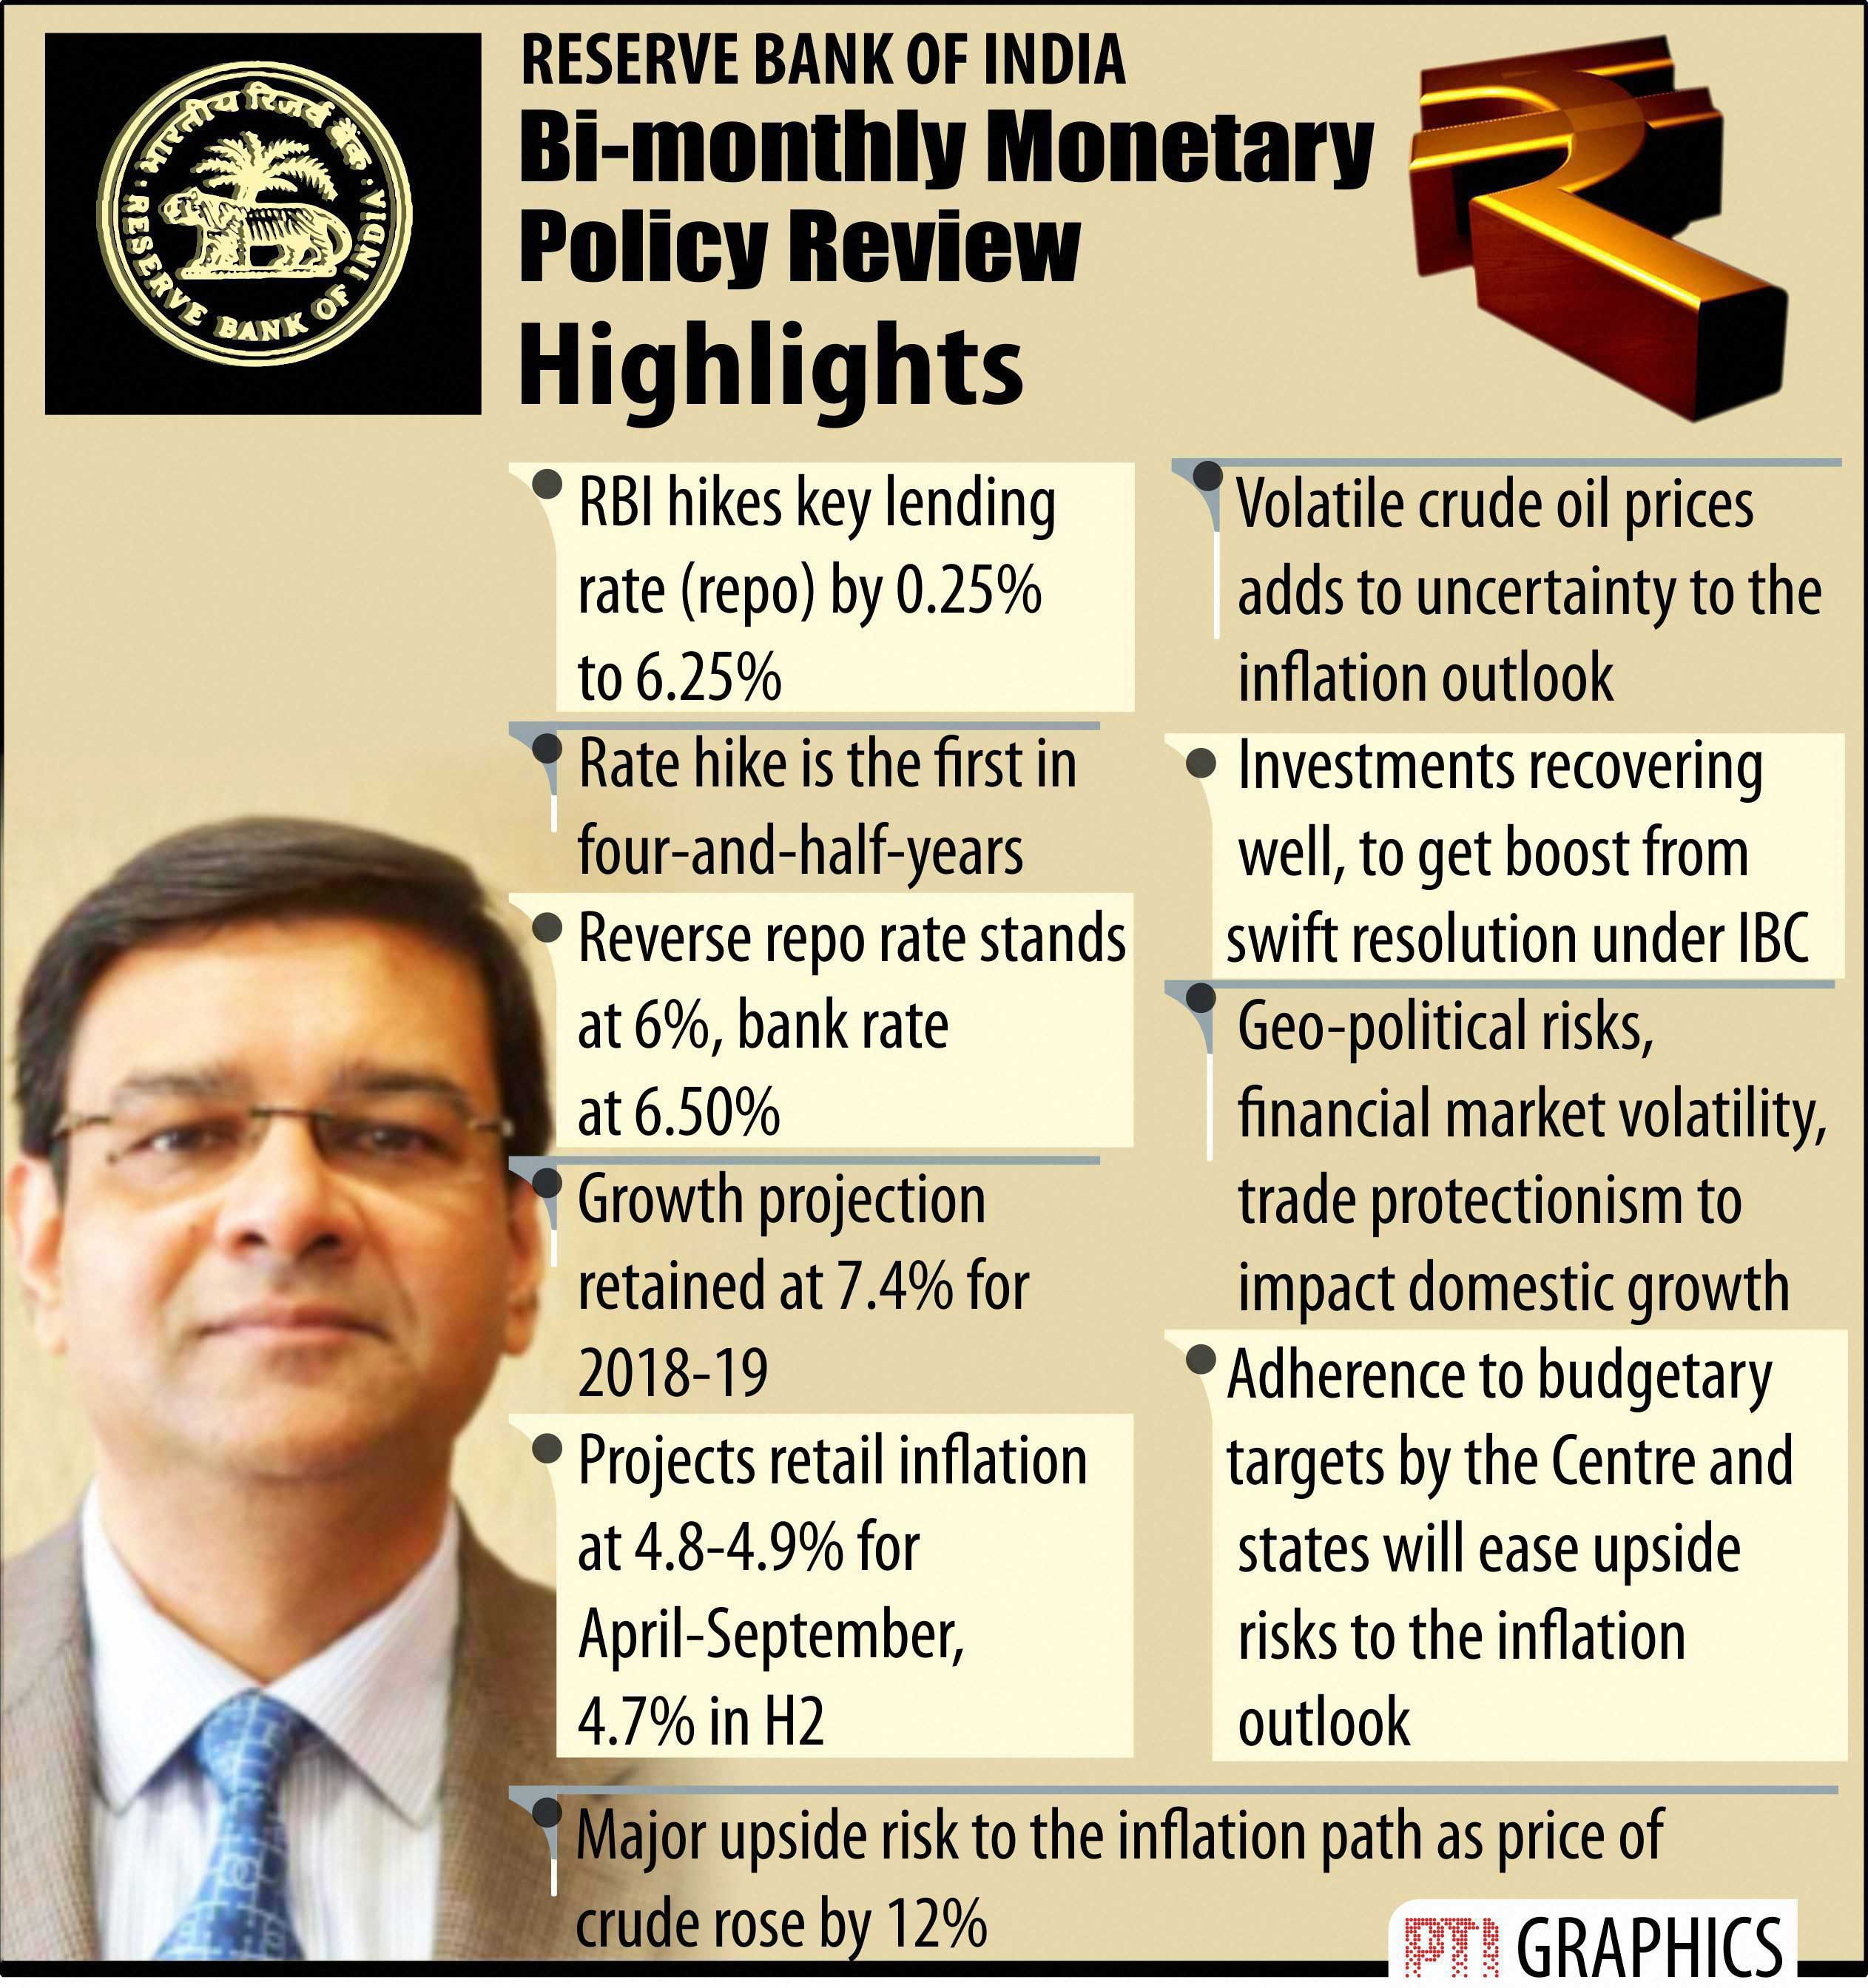 Monetary policy: RBI hikes repo rate by 25 bps to 6.25 per cent